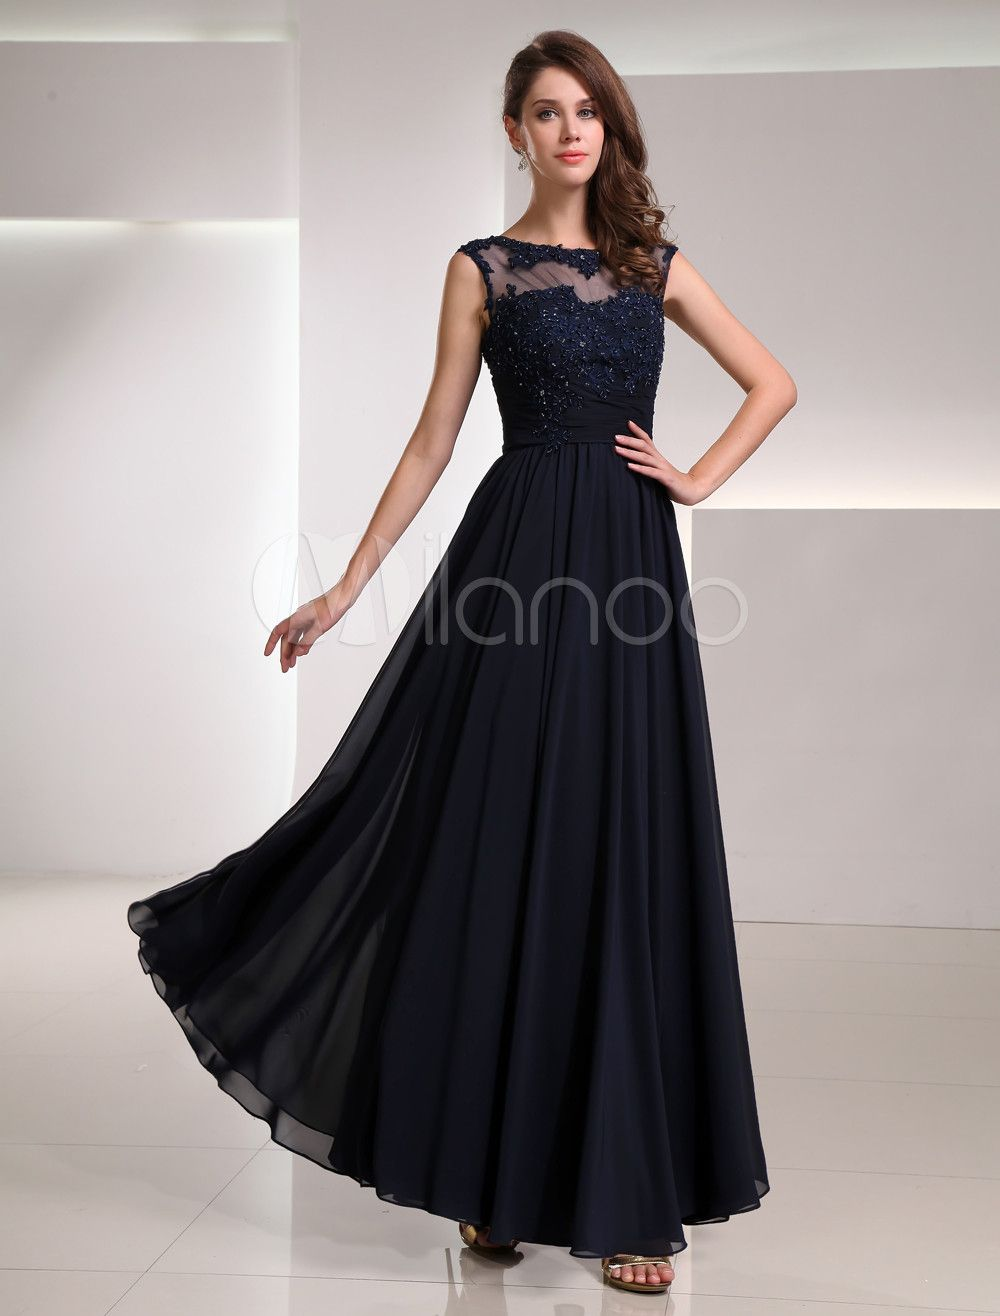 3b10aa4aacb Milanoo   Dark Navy Chiffon Long Evening Dress with Mesh Illusion Neck